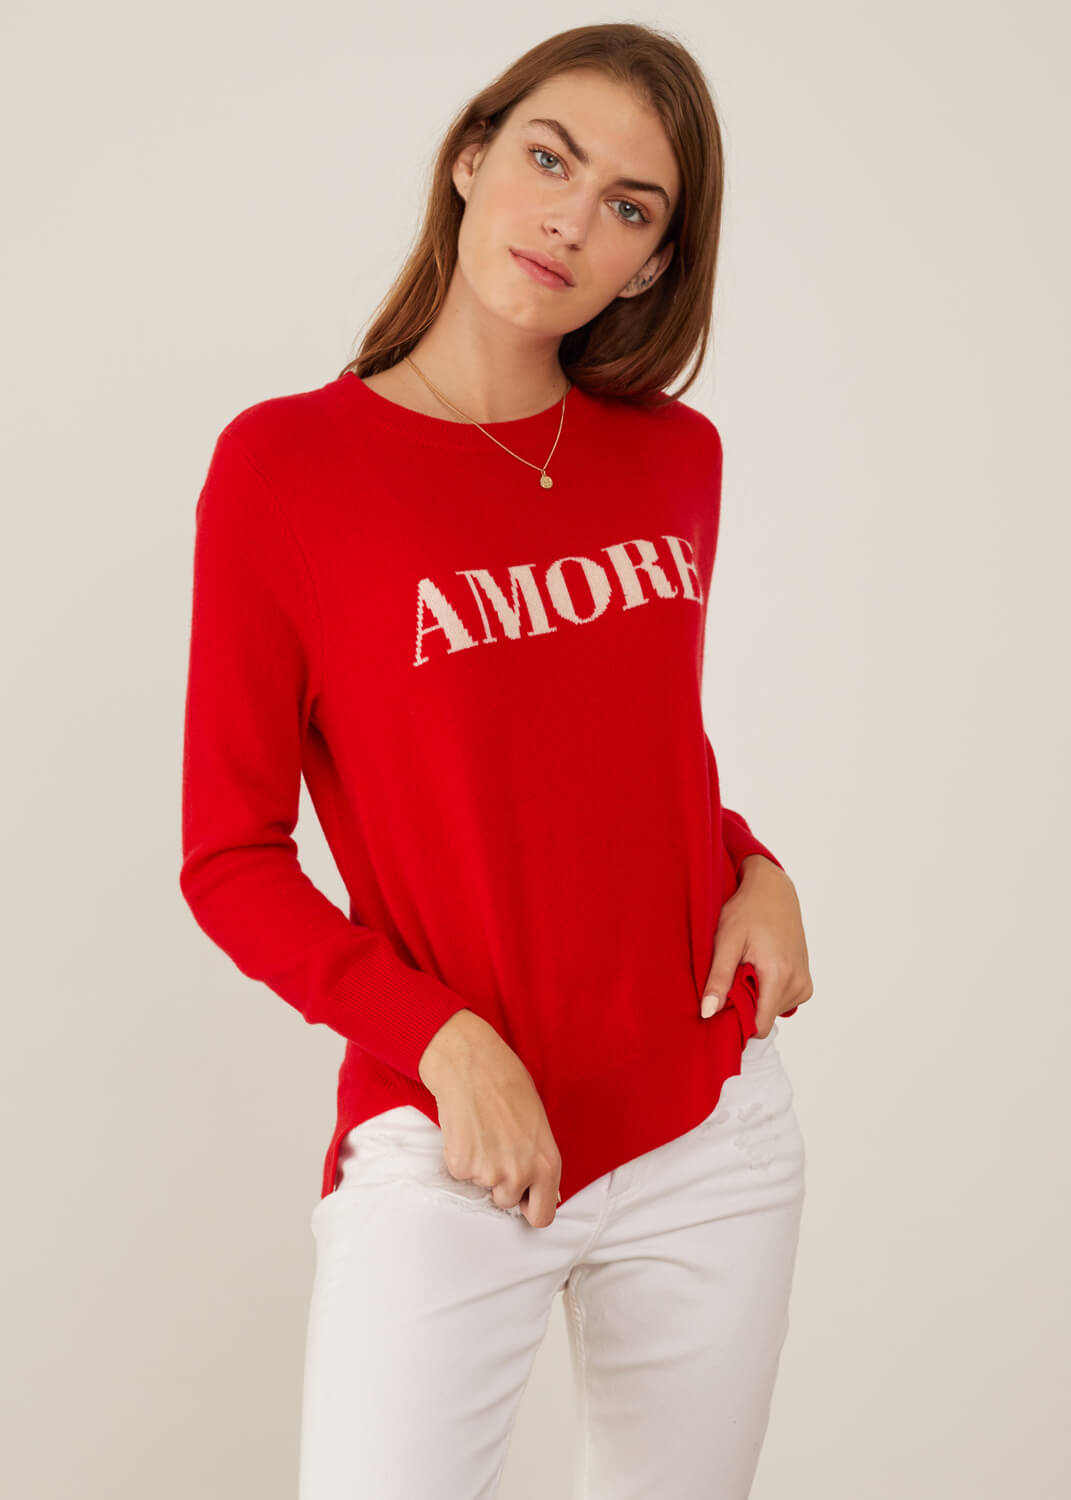 Sophie - Sweater - Amore - Red